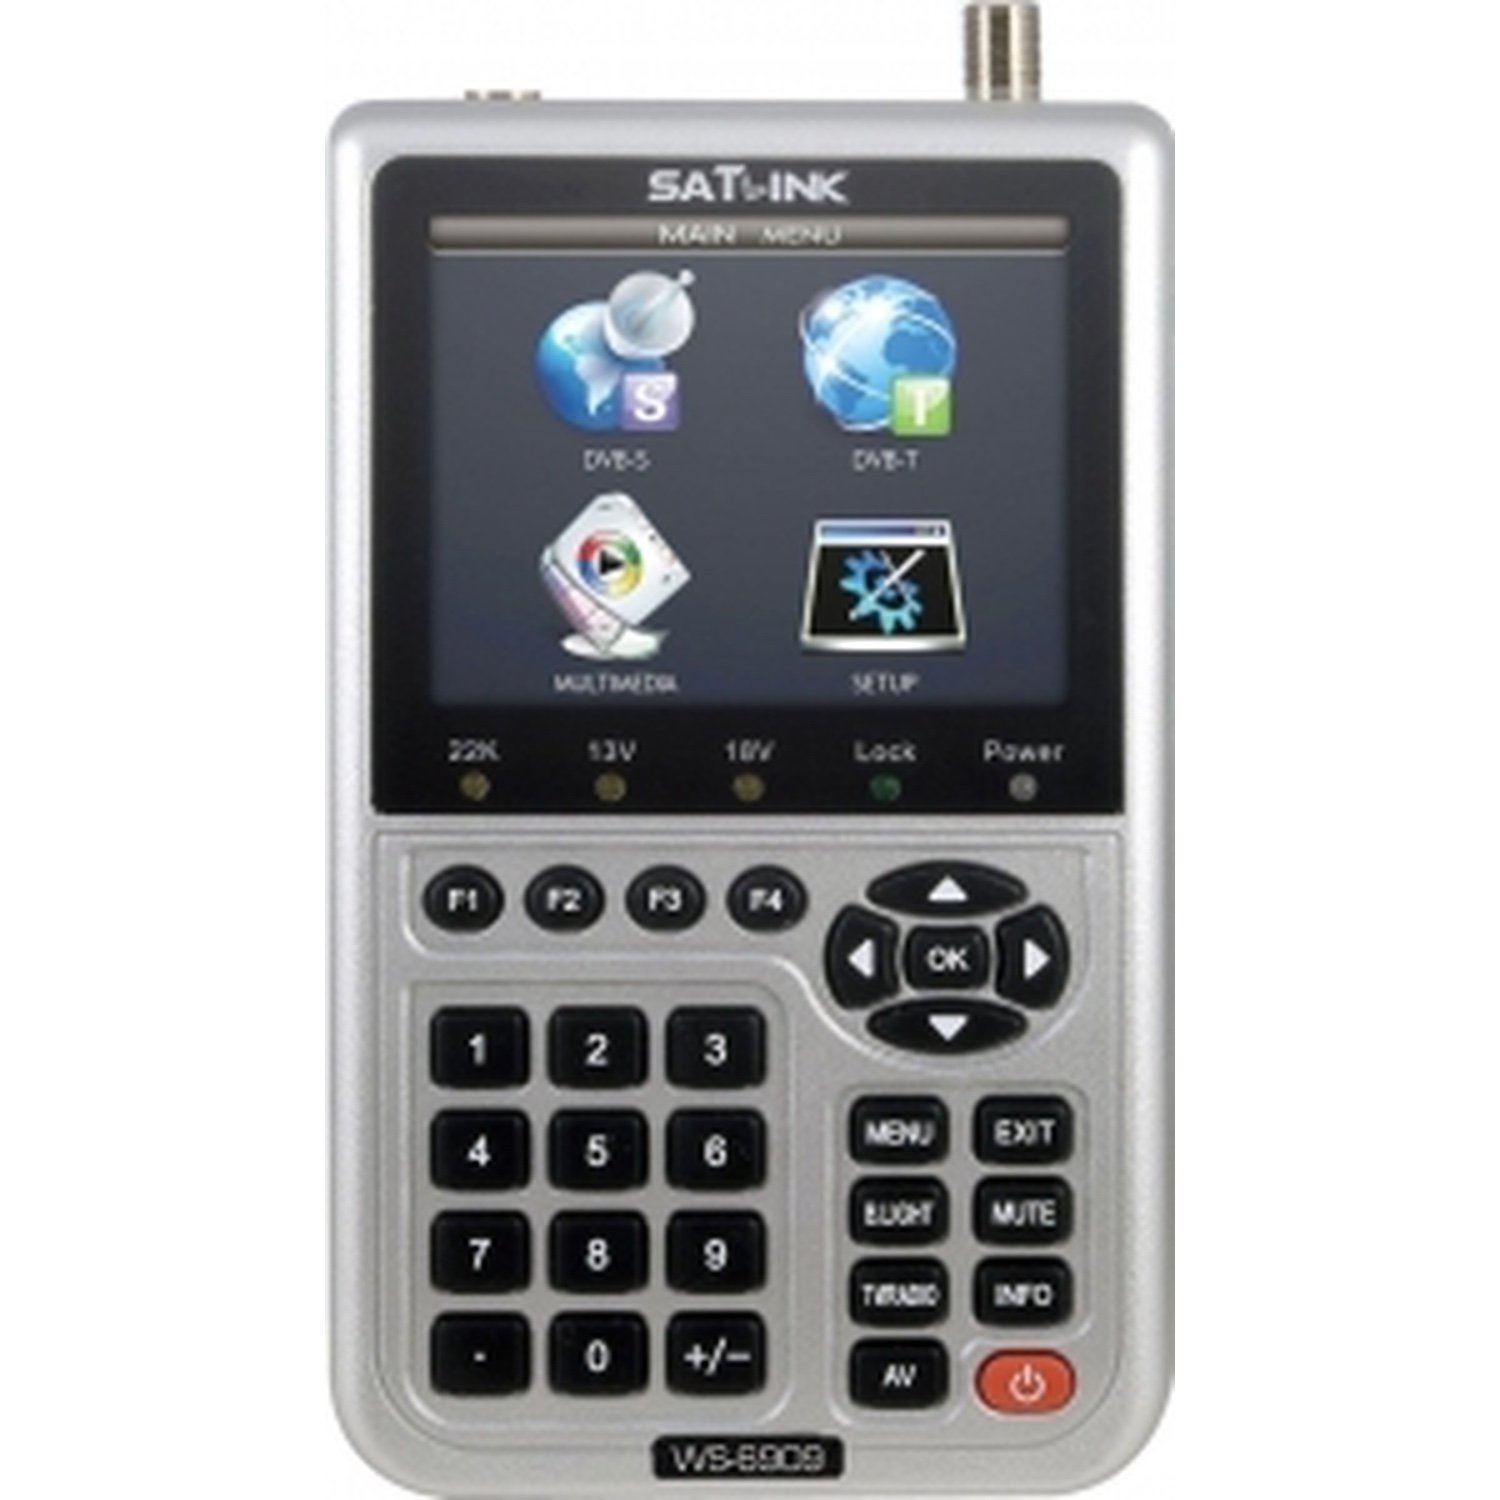 Meter-DIGITAL TV analyzer DVB-T(TDT) and DVB-S (satellite) <font><b>SATLINK</b></font> <font><b>WS</b></font>-<font><b>6909</b></font> image